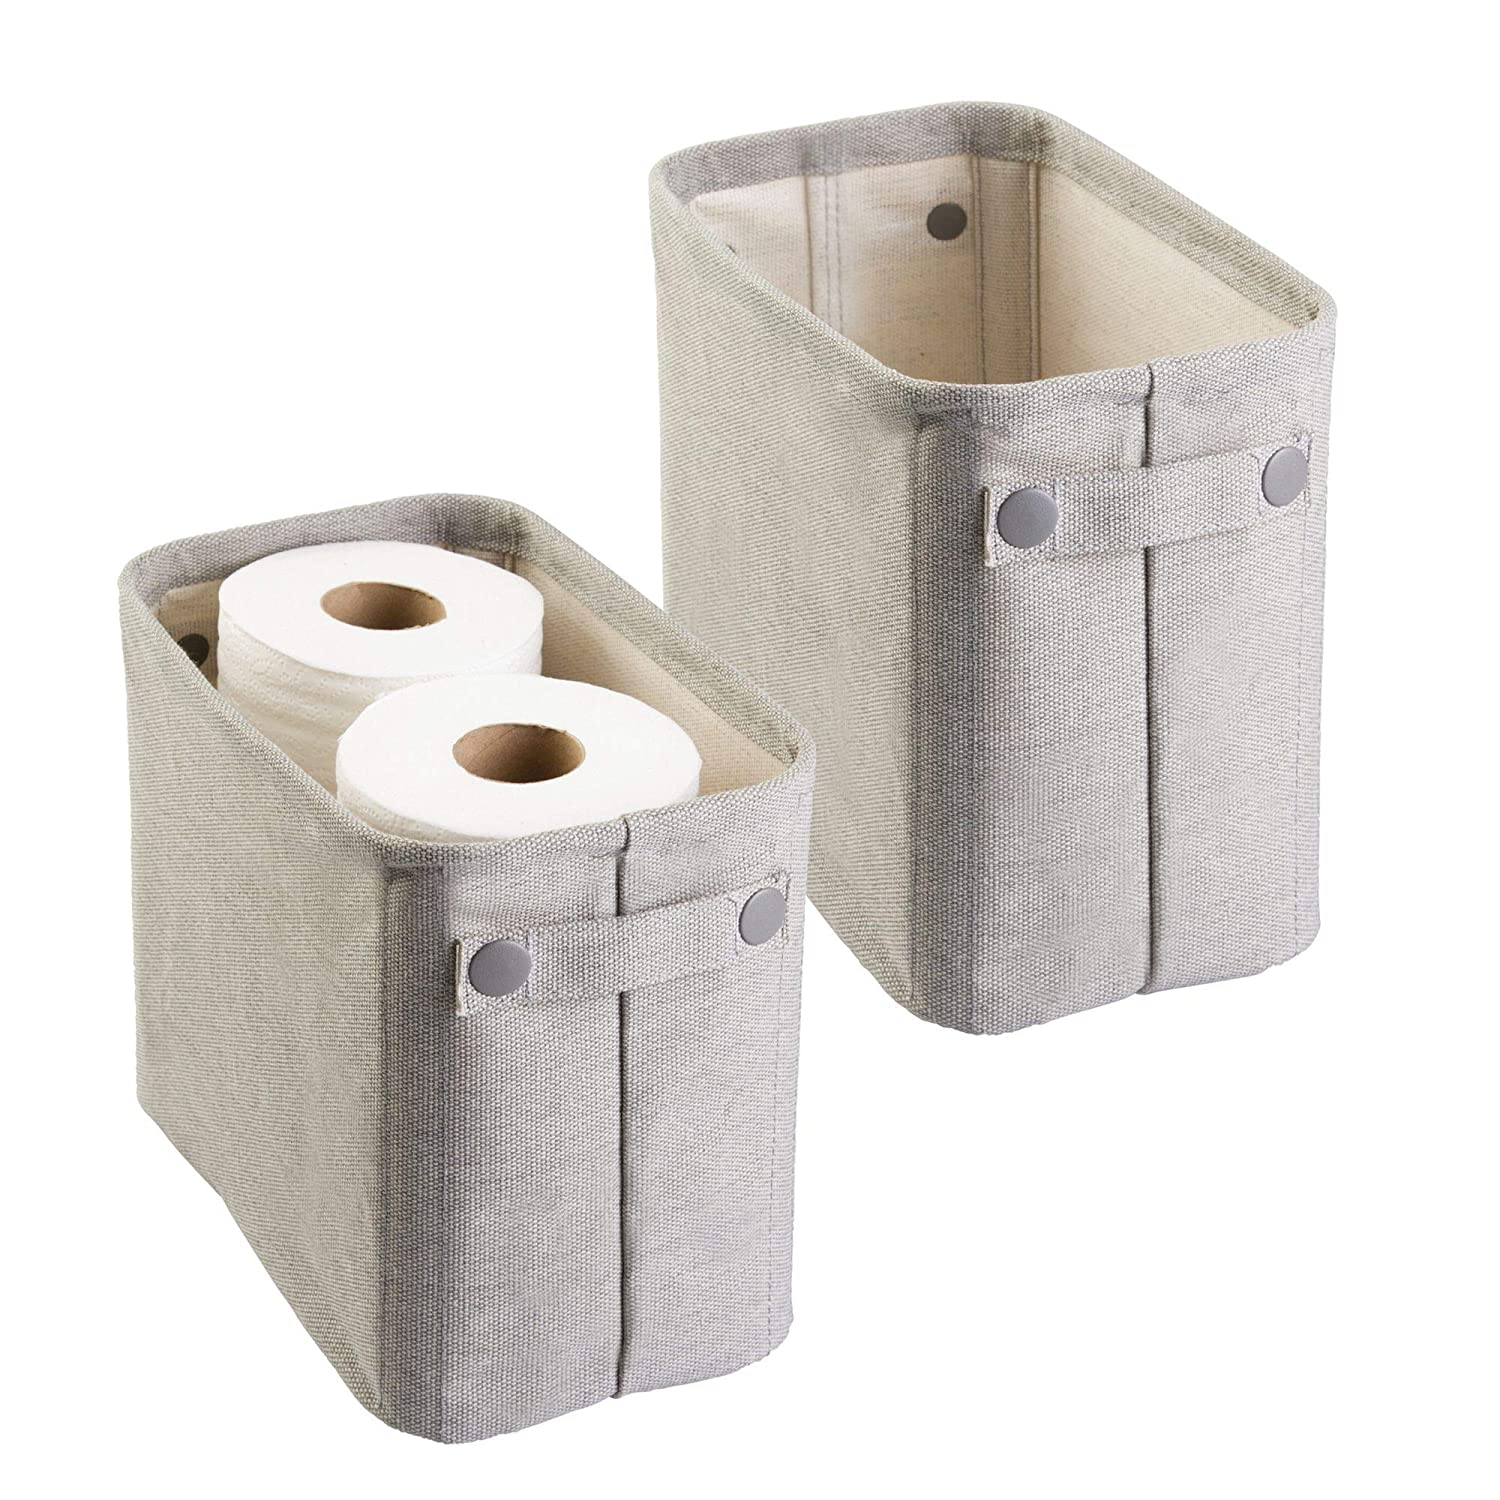 mDesign Cotton Fabric Bathroom Storage Bin for Magazines, Toilet Paper, Bath Towels - Small, Light Gray MetroDecor FBA_1603MDBA